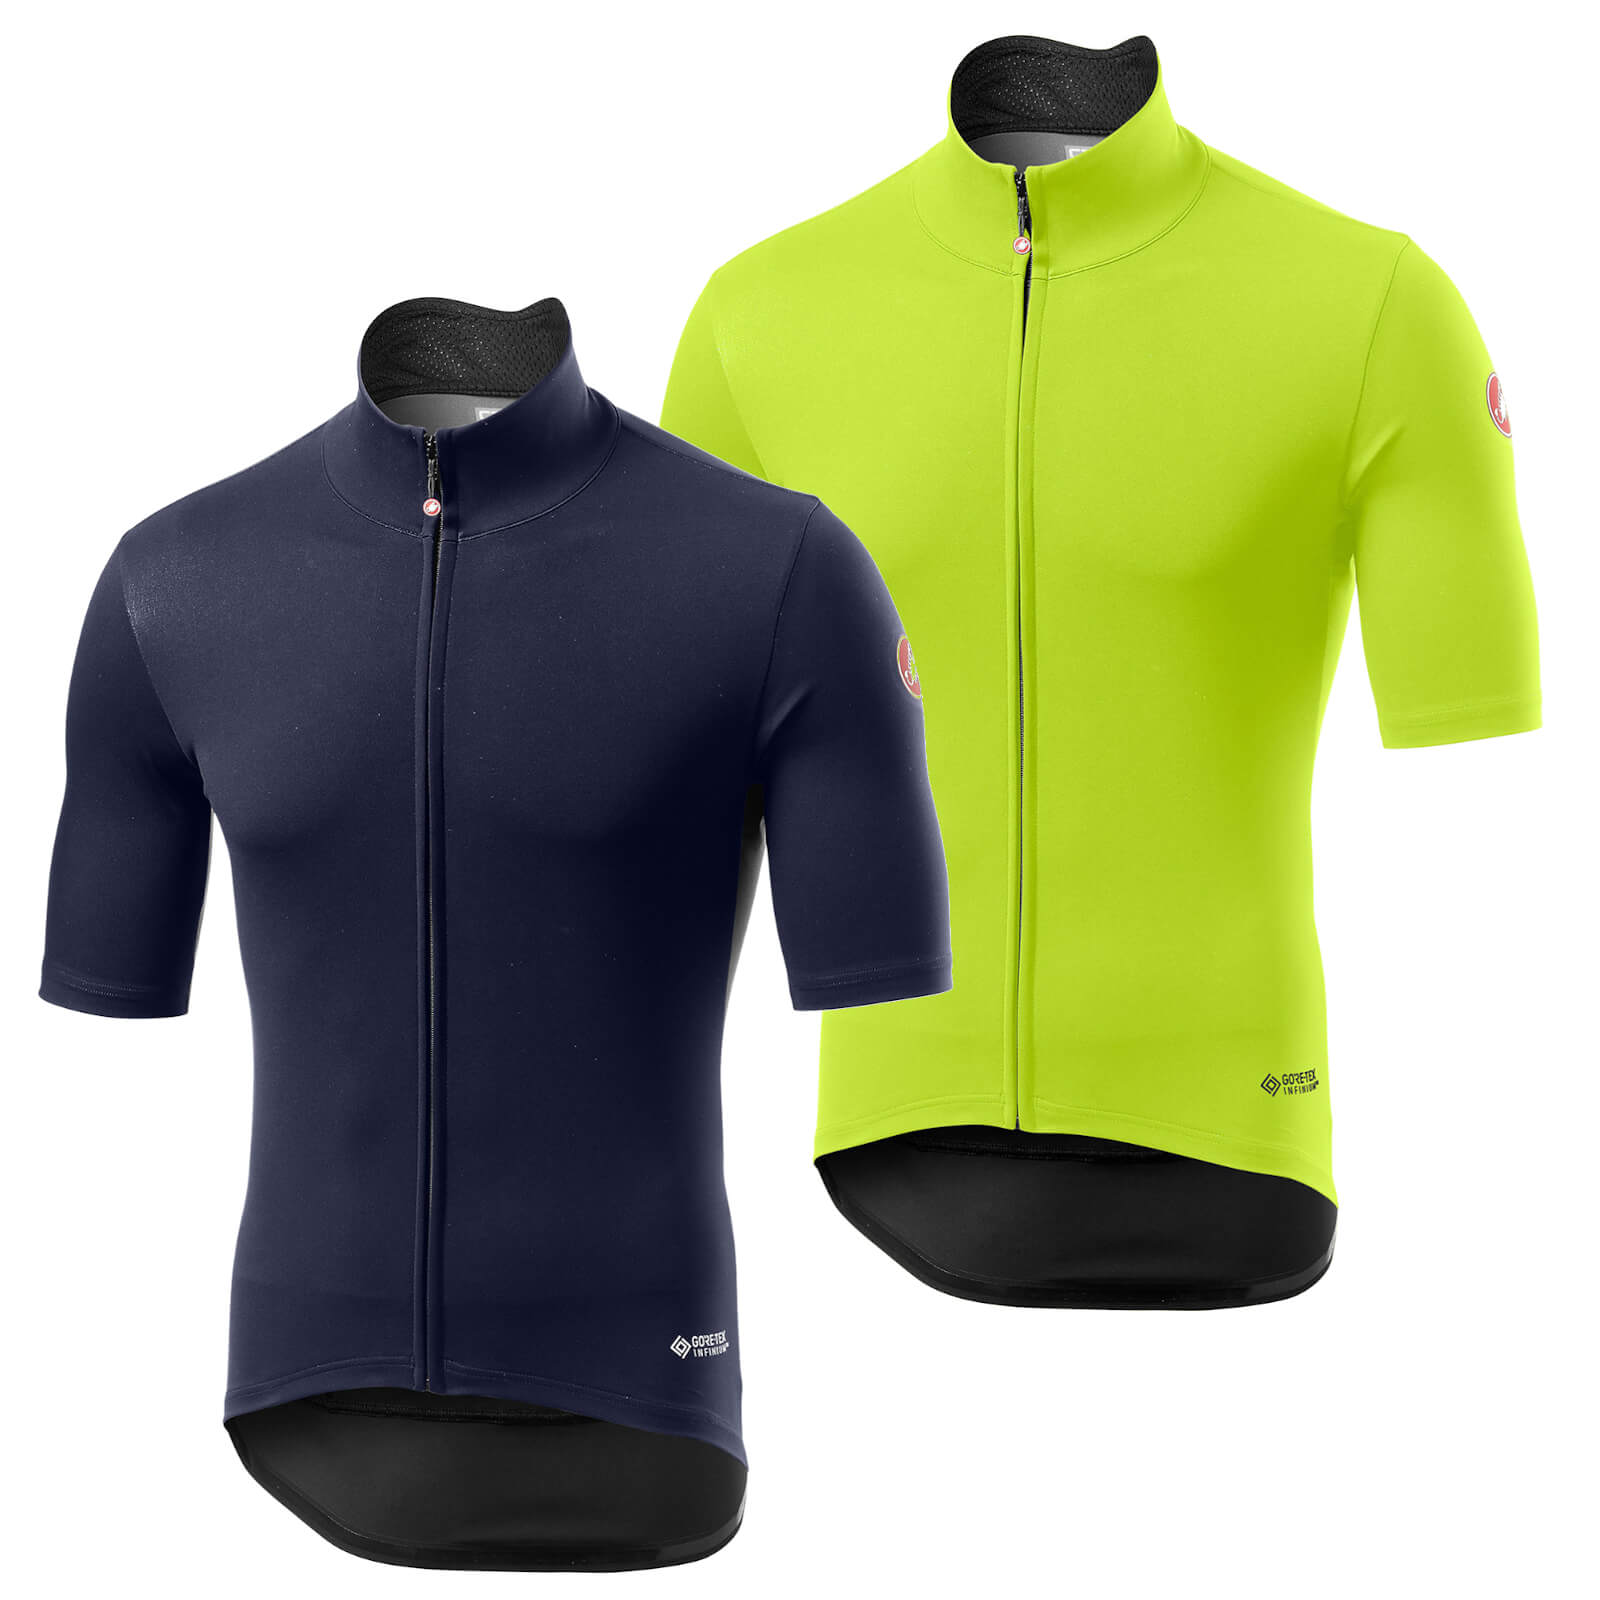 Castelli Perfetto Ros Light Jersey - S - Military Green